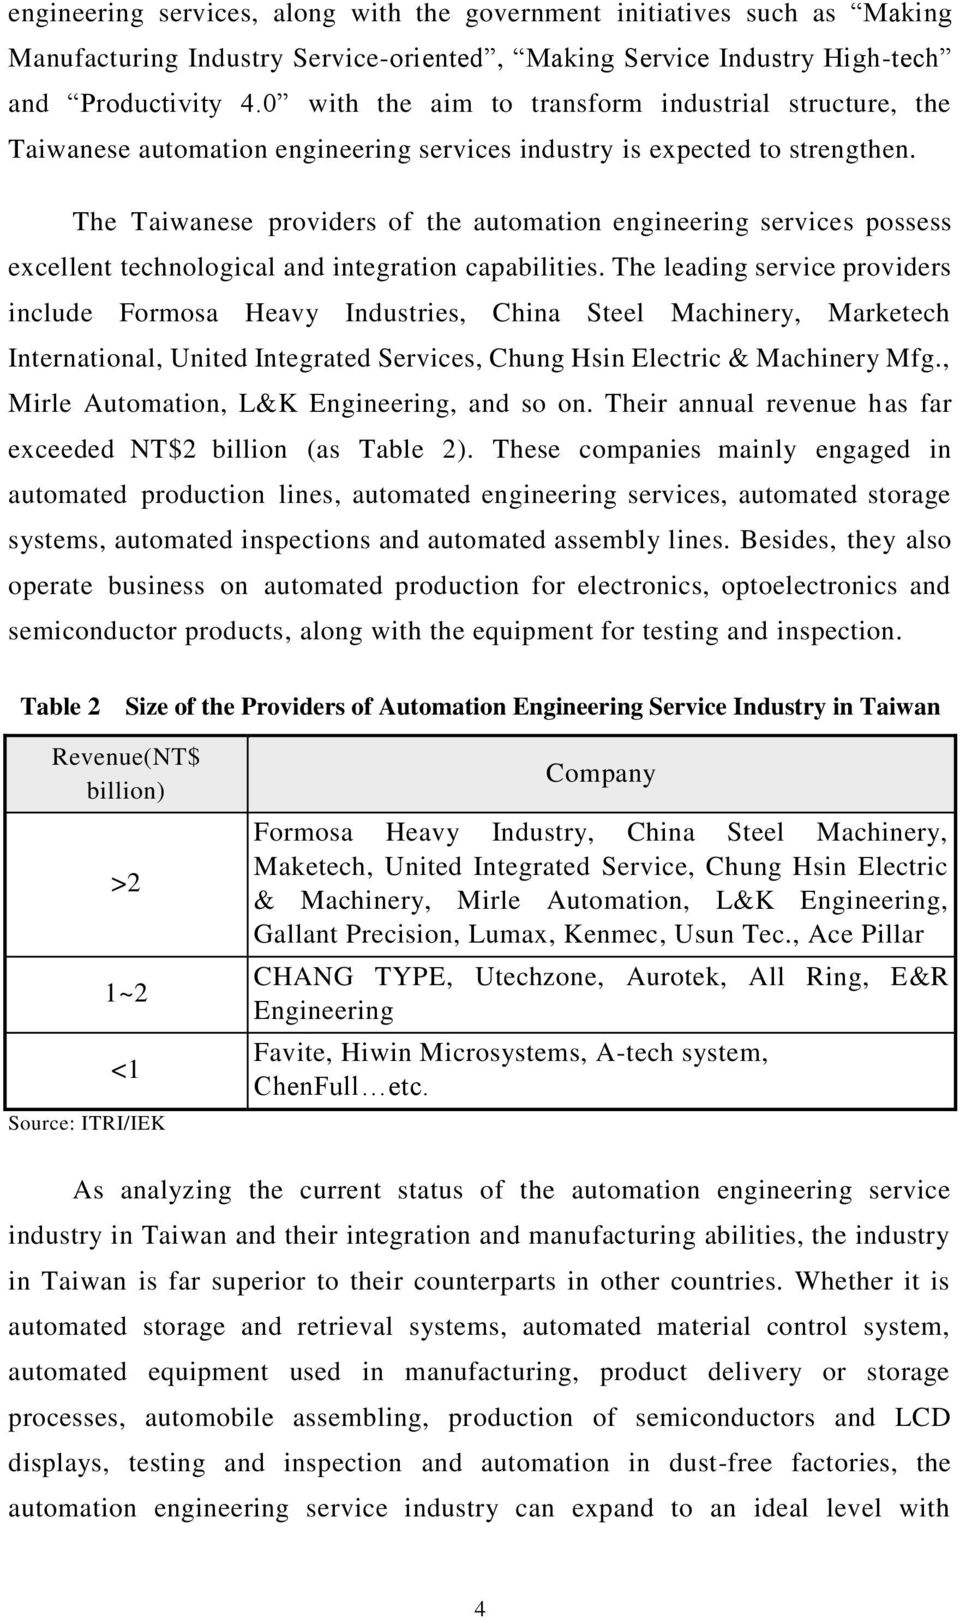 The Taiwanese providers of the automation engineering services possess excellent technological and integration capabilities.